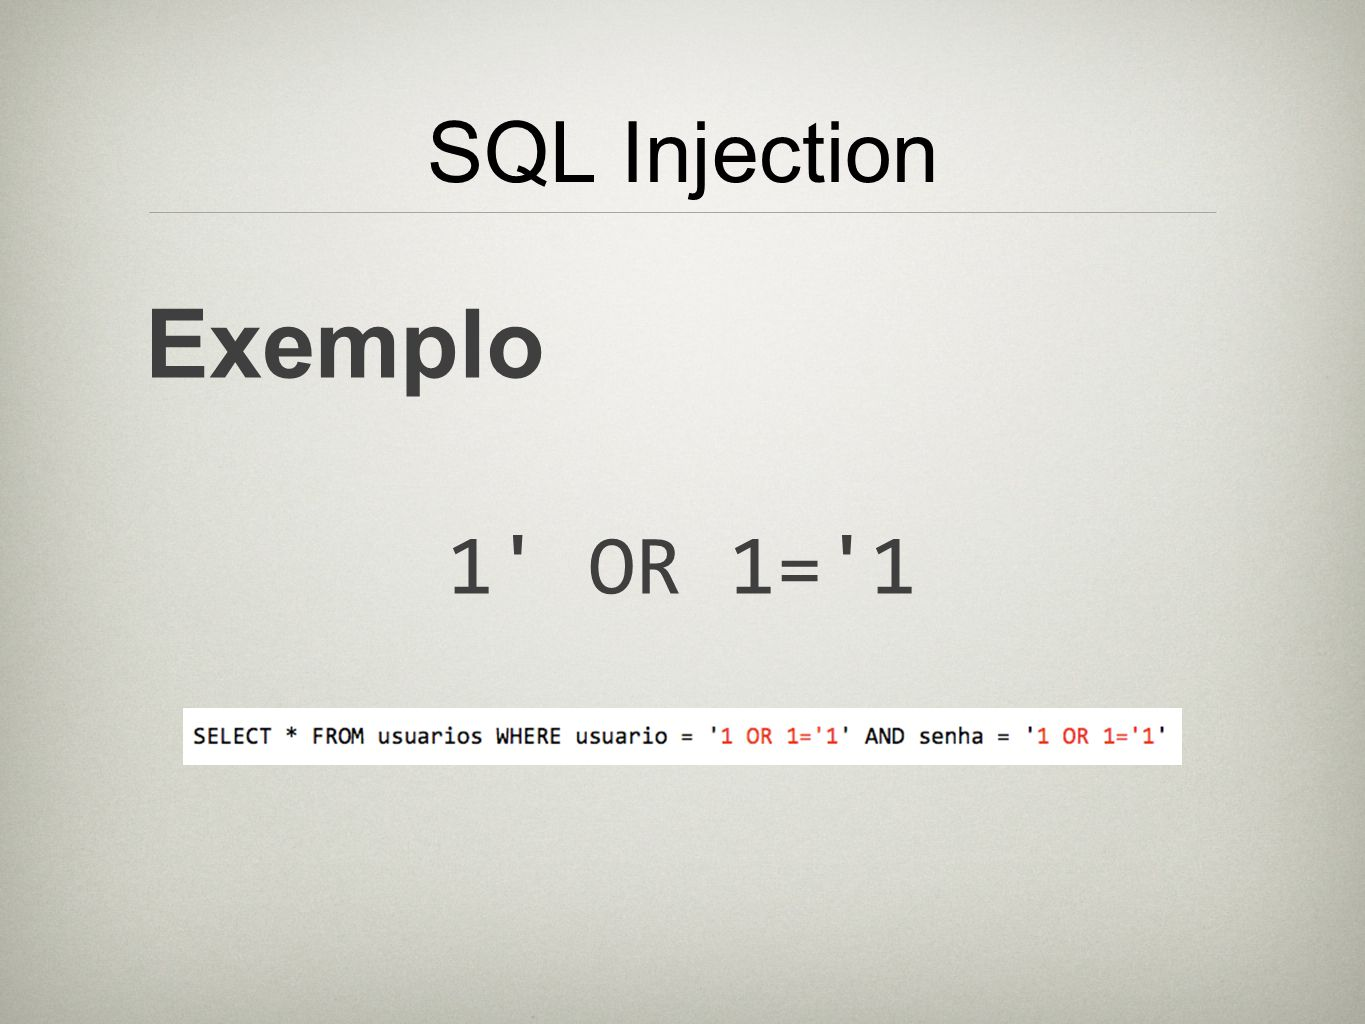 SQL Injection Exemplo 1 OR 1= 1